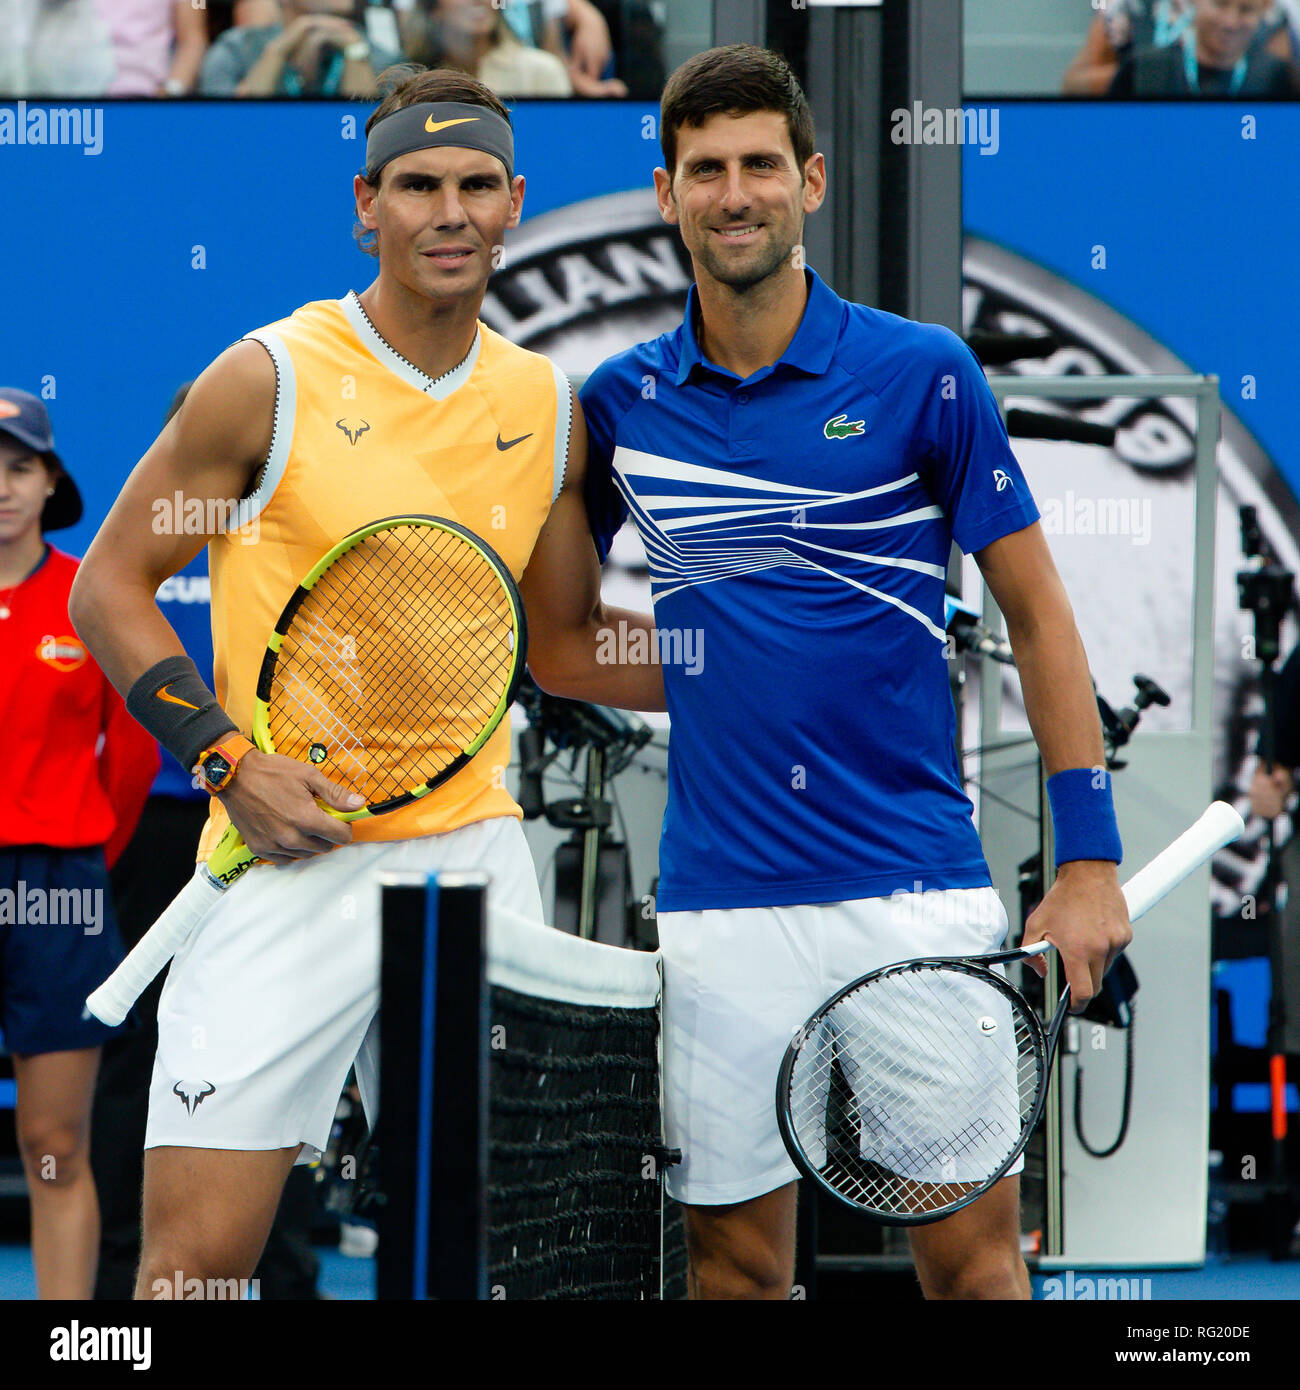 Melbourne, Australia. 27th Jan, 2019. Tennis: Grand Slam, Australia Open. Rafael Nadal (l) from Spain and Novak Djokovic from Serbia will be together in the cameras before the final. Credit: Frank Molter/dpa/Alamy Live News - Stock Image